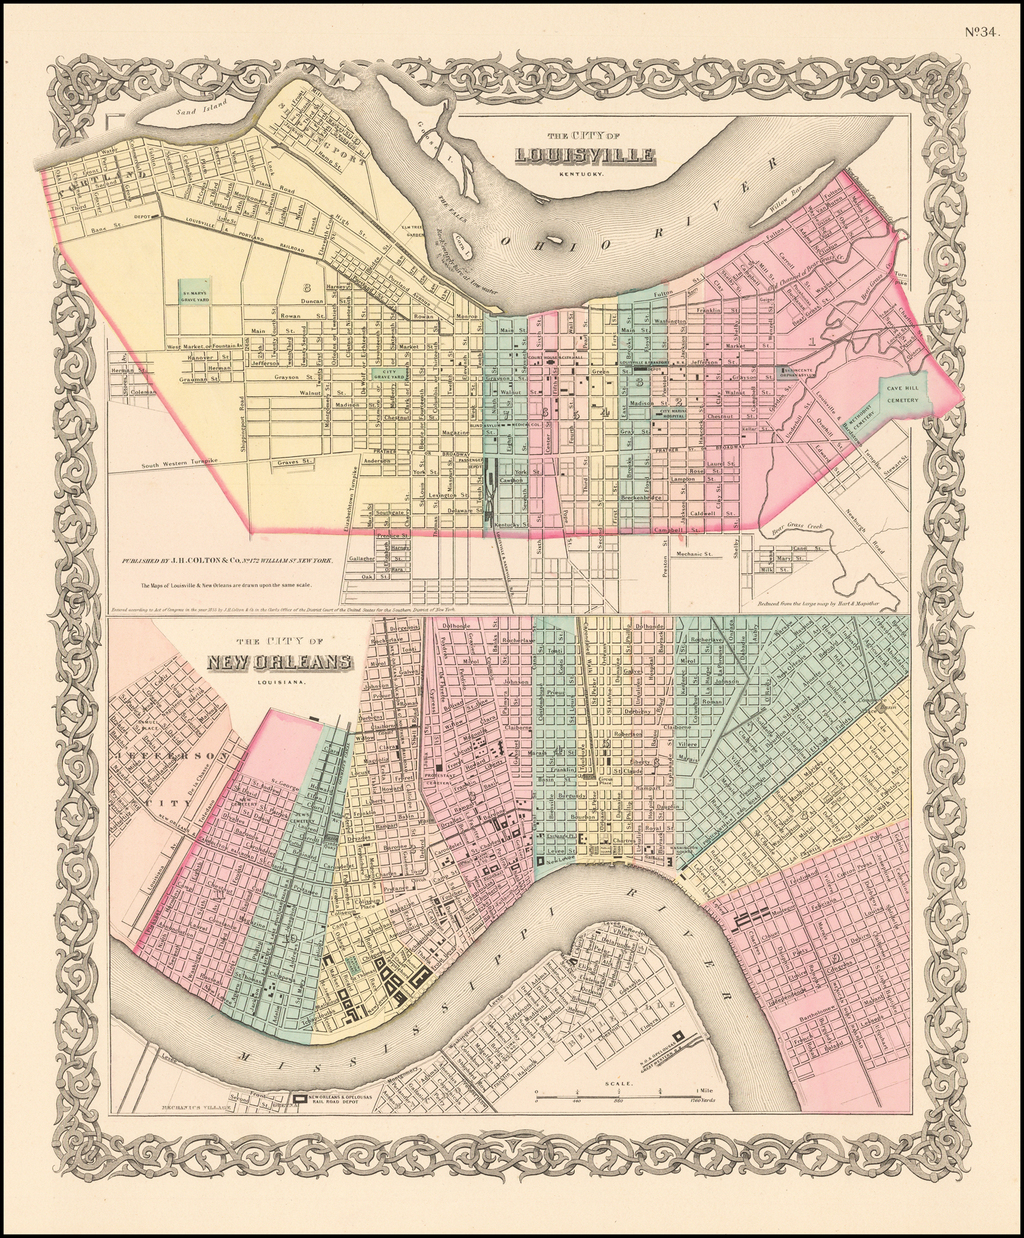 Colton's The City of Louisville [with] Colton's The City of New Orleans By Joseph Hutchins Colton